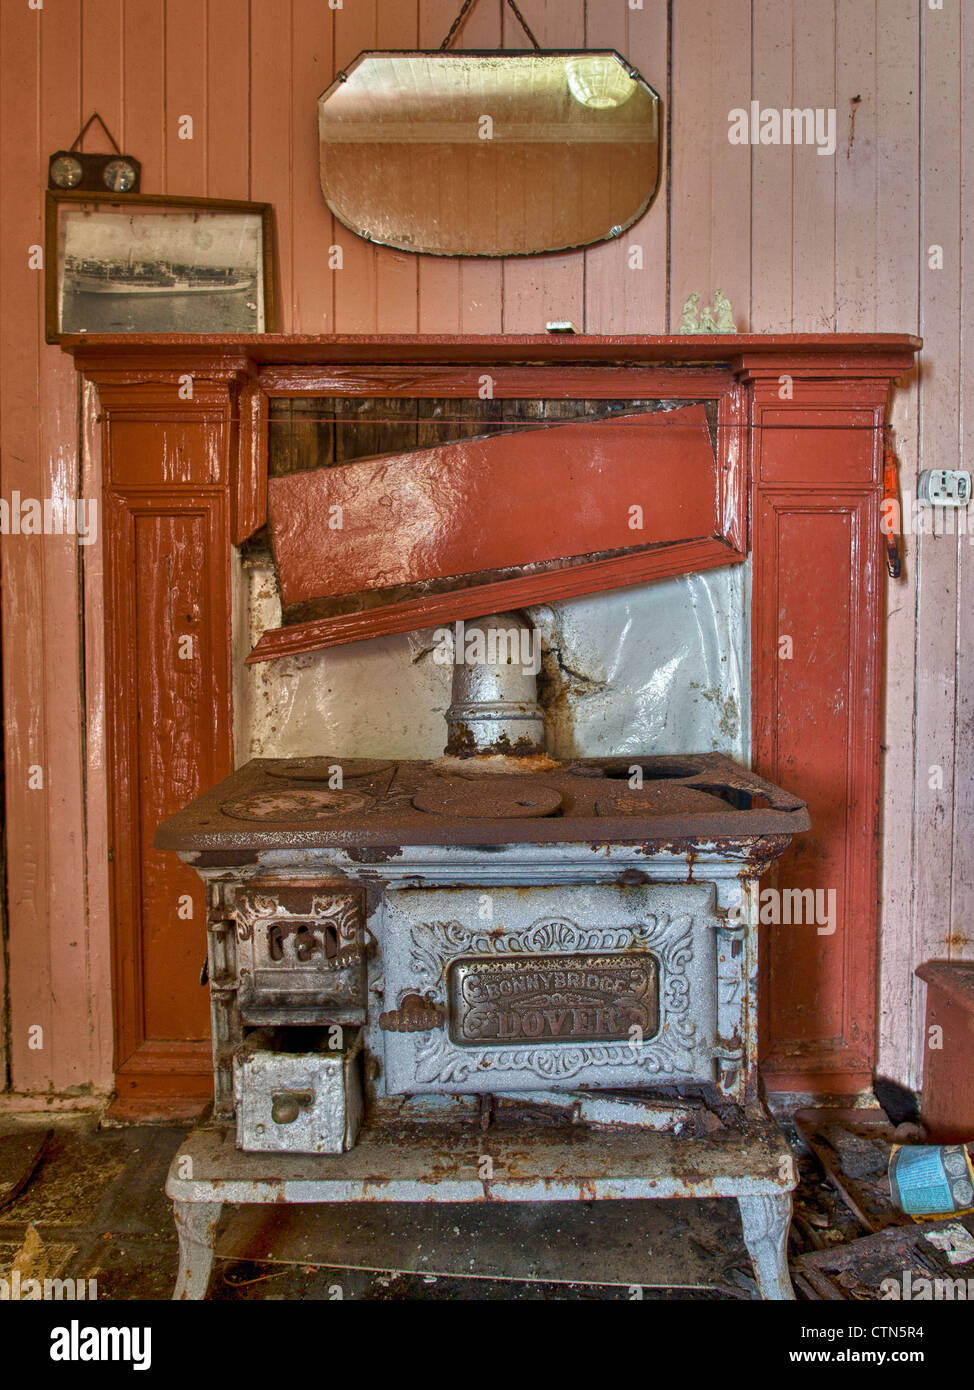 Old Iron Stove, Vatersay, Outer Hebrides - Stock Image